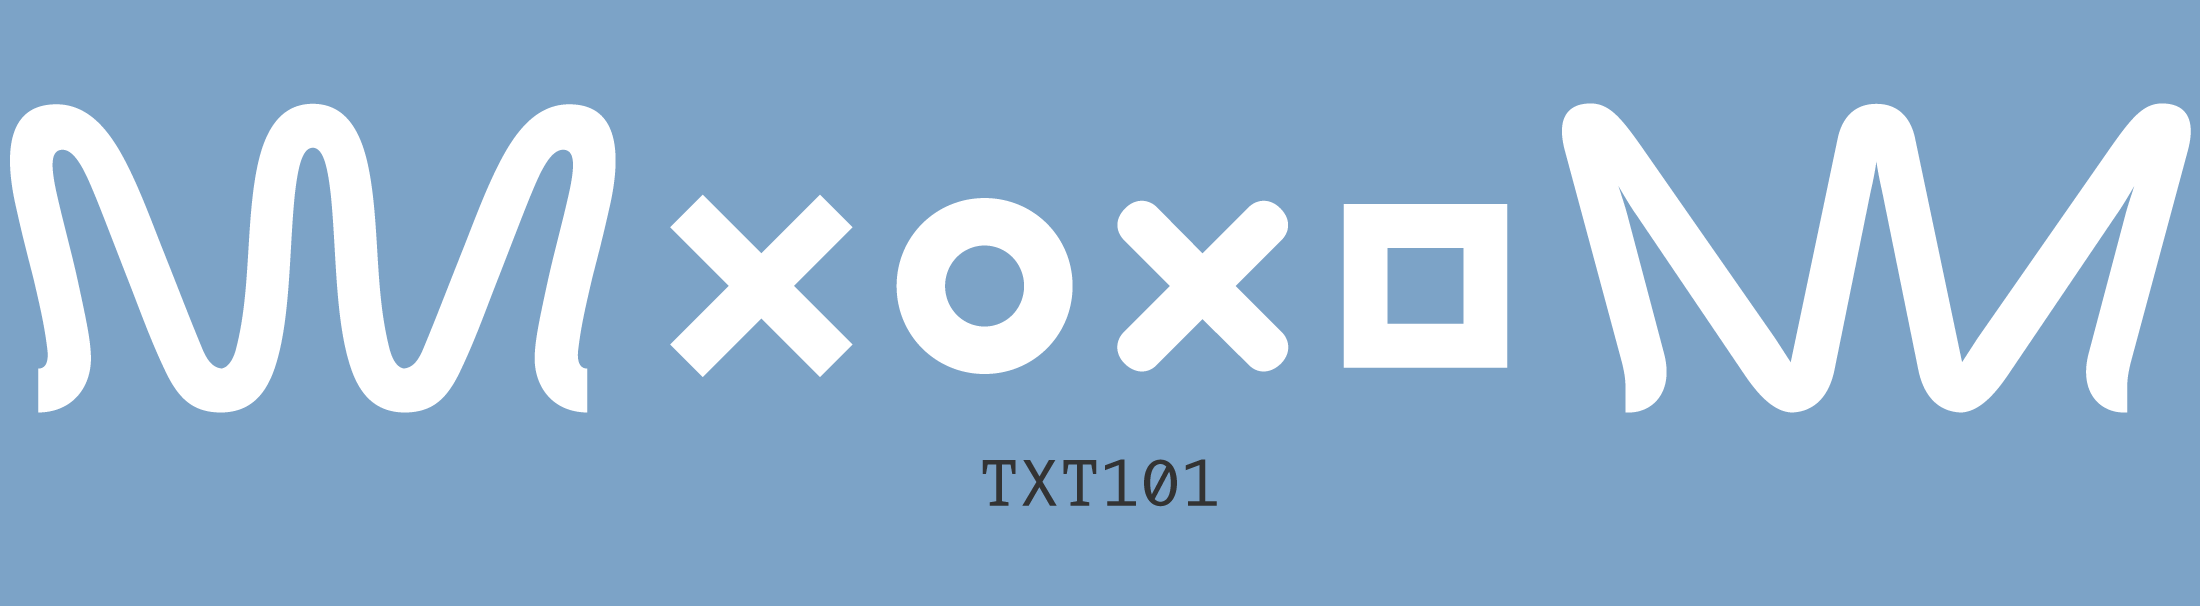 TXT101 is a fresh, friendly typeface for mock text and ...